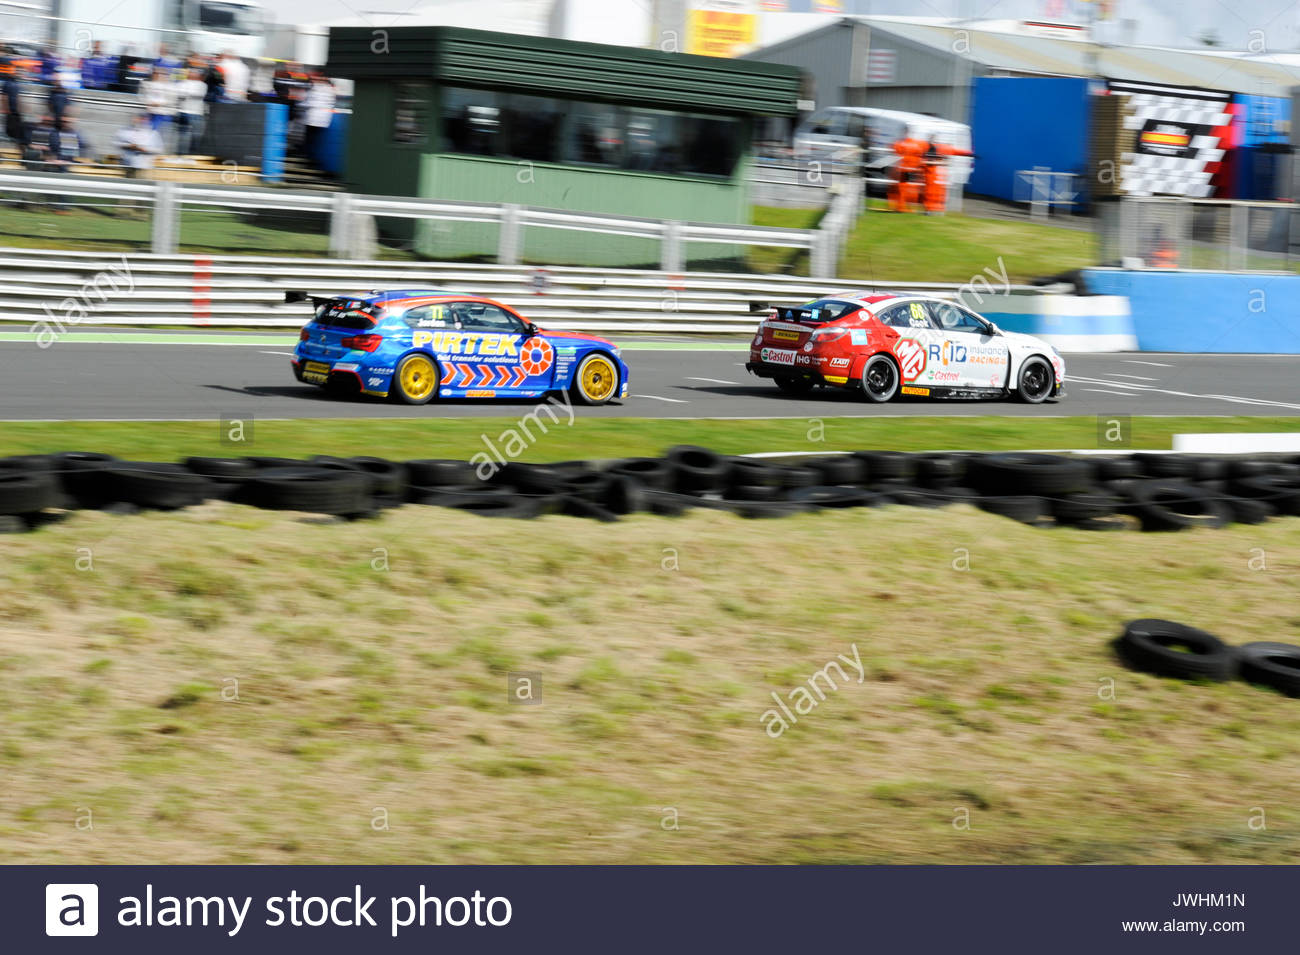 Dunfermline, UK. 13th Aug, 2017. (66) Josh Cook and Andrew Jordan (77) during the Dunlop MSA British Touring Car Championship seventh round at Knockhill Race Circuit. Credit: Roger Gaisford/Alamy Live News - Stock Image